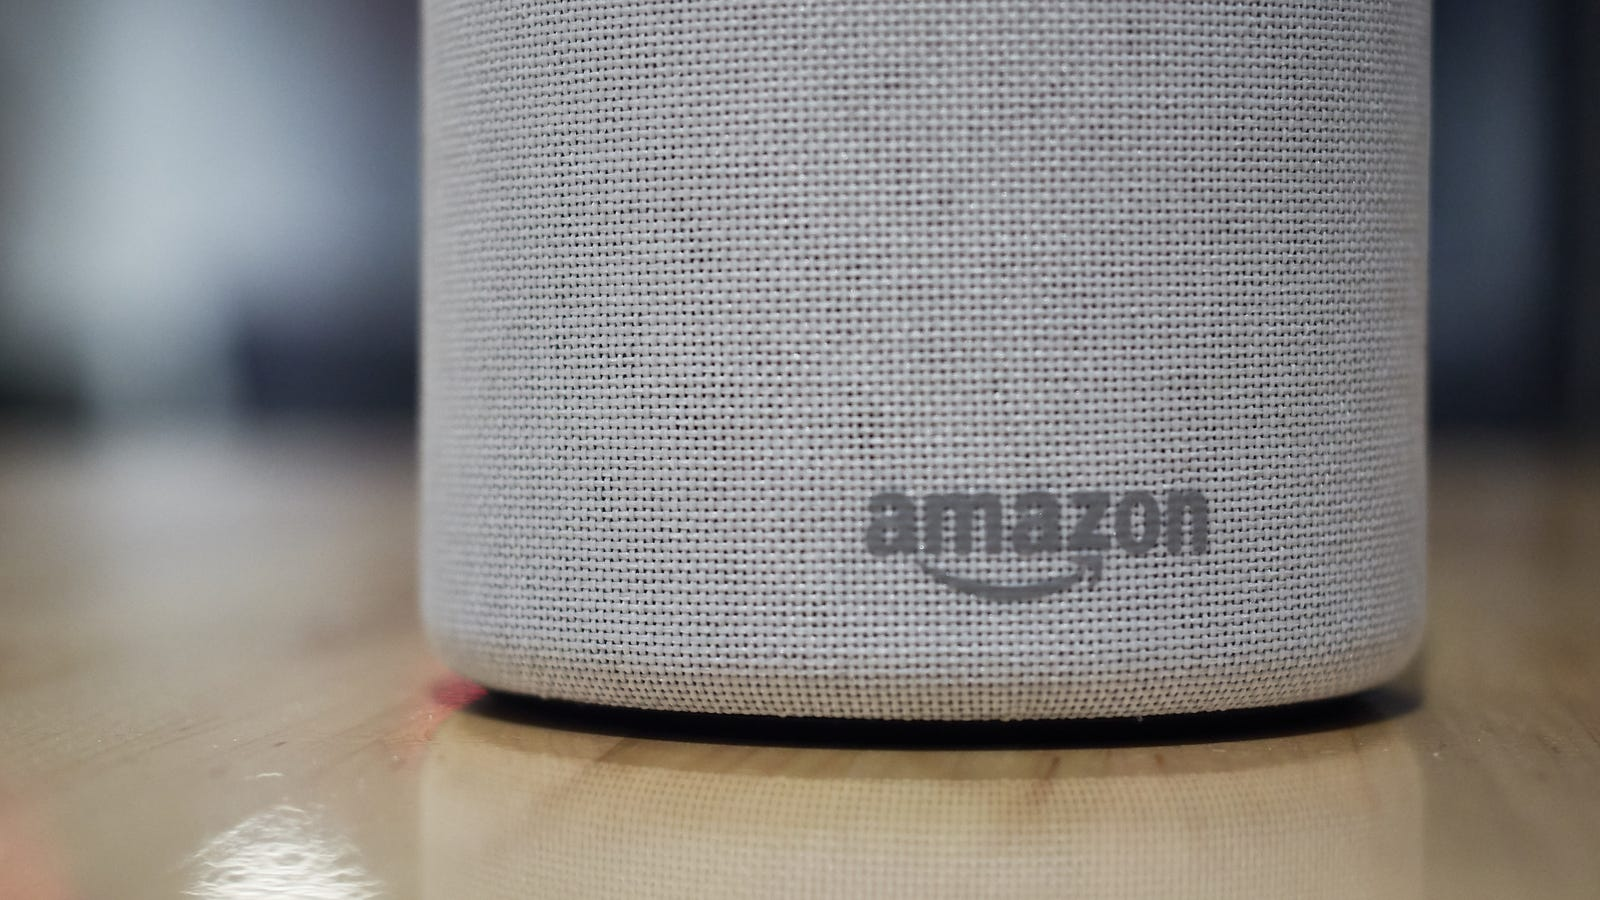 Alexa's Sneaky Fine Print Could Prevent You From Suing Amazon for Anything